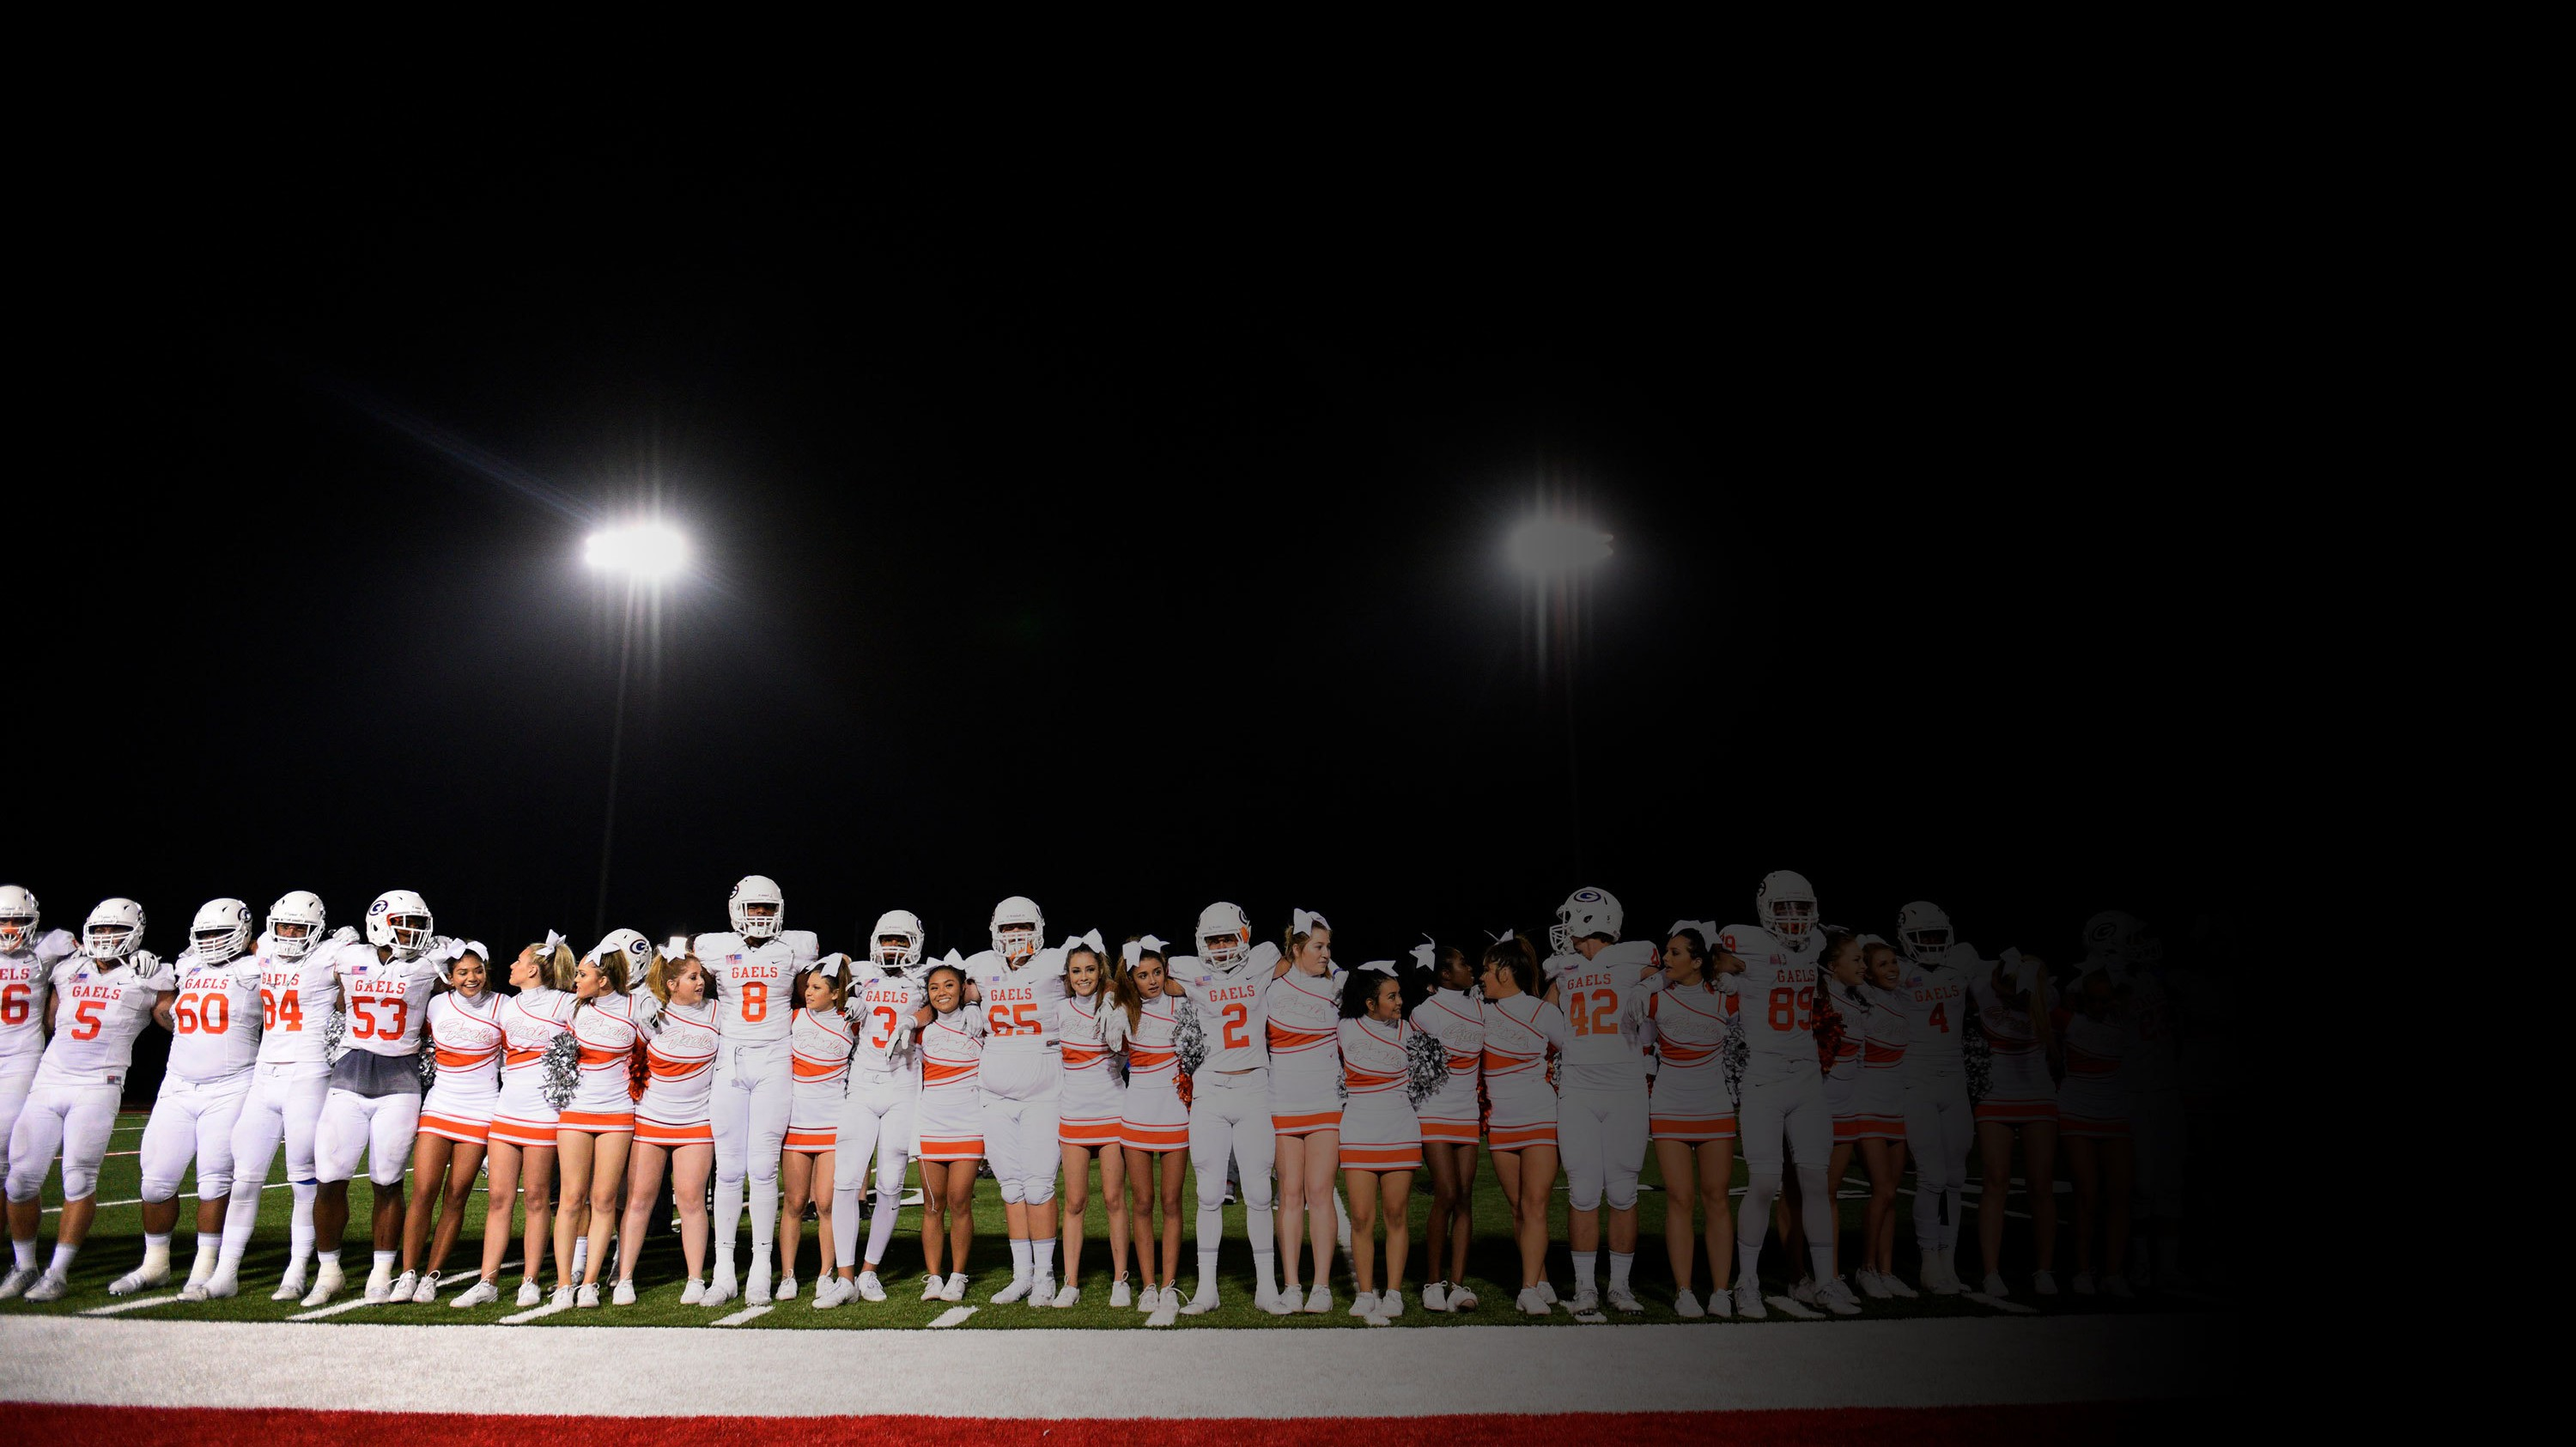 Friday Night Lights Out: The Case for Abolishing High School Football